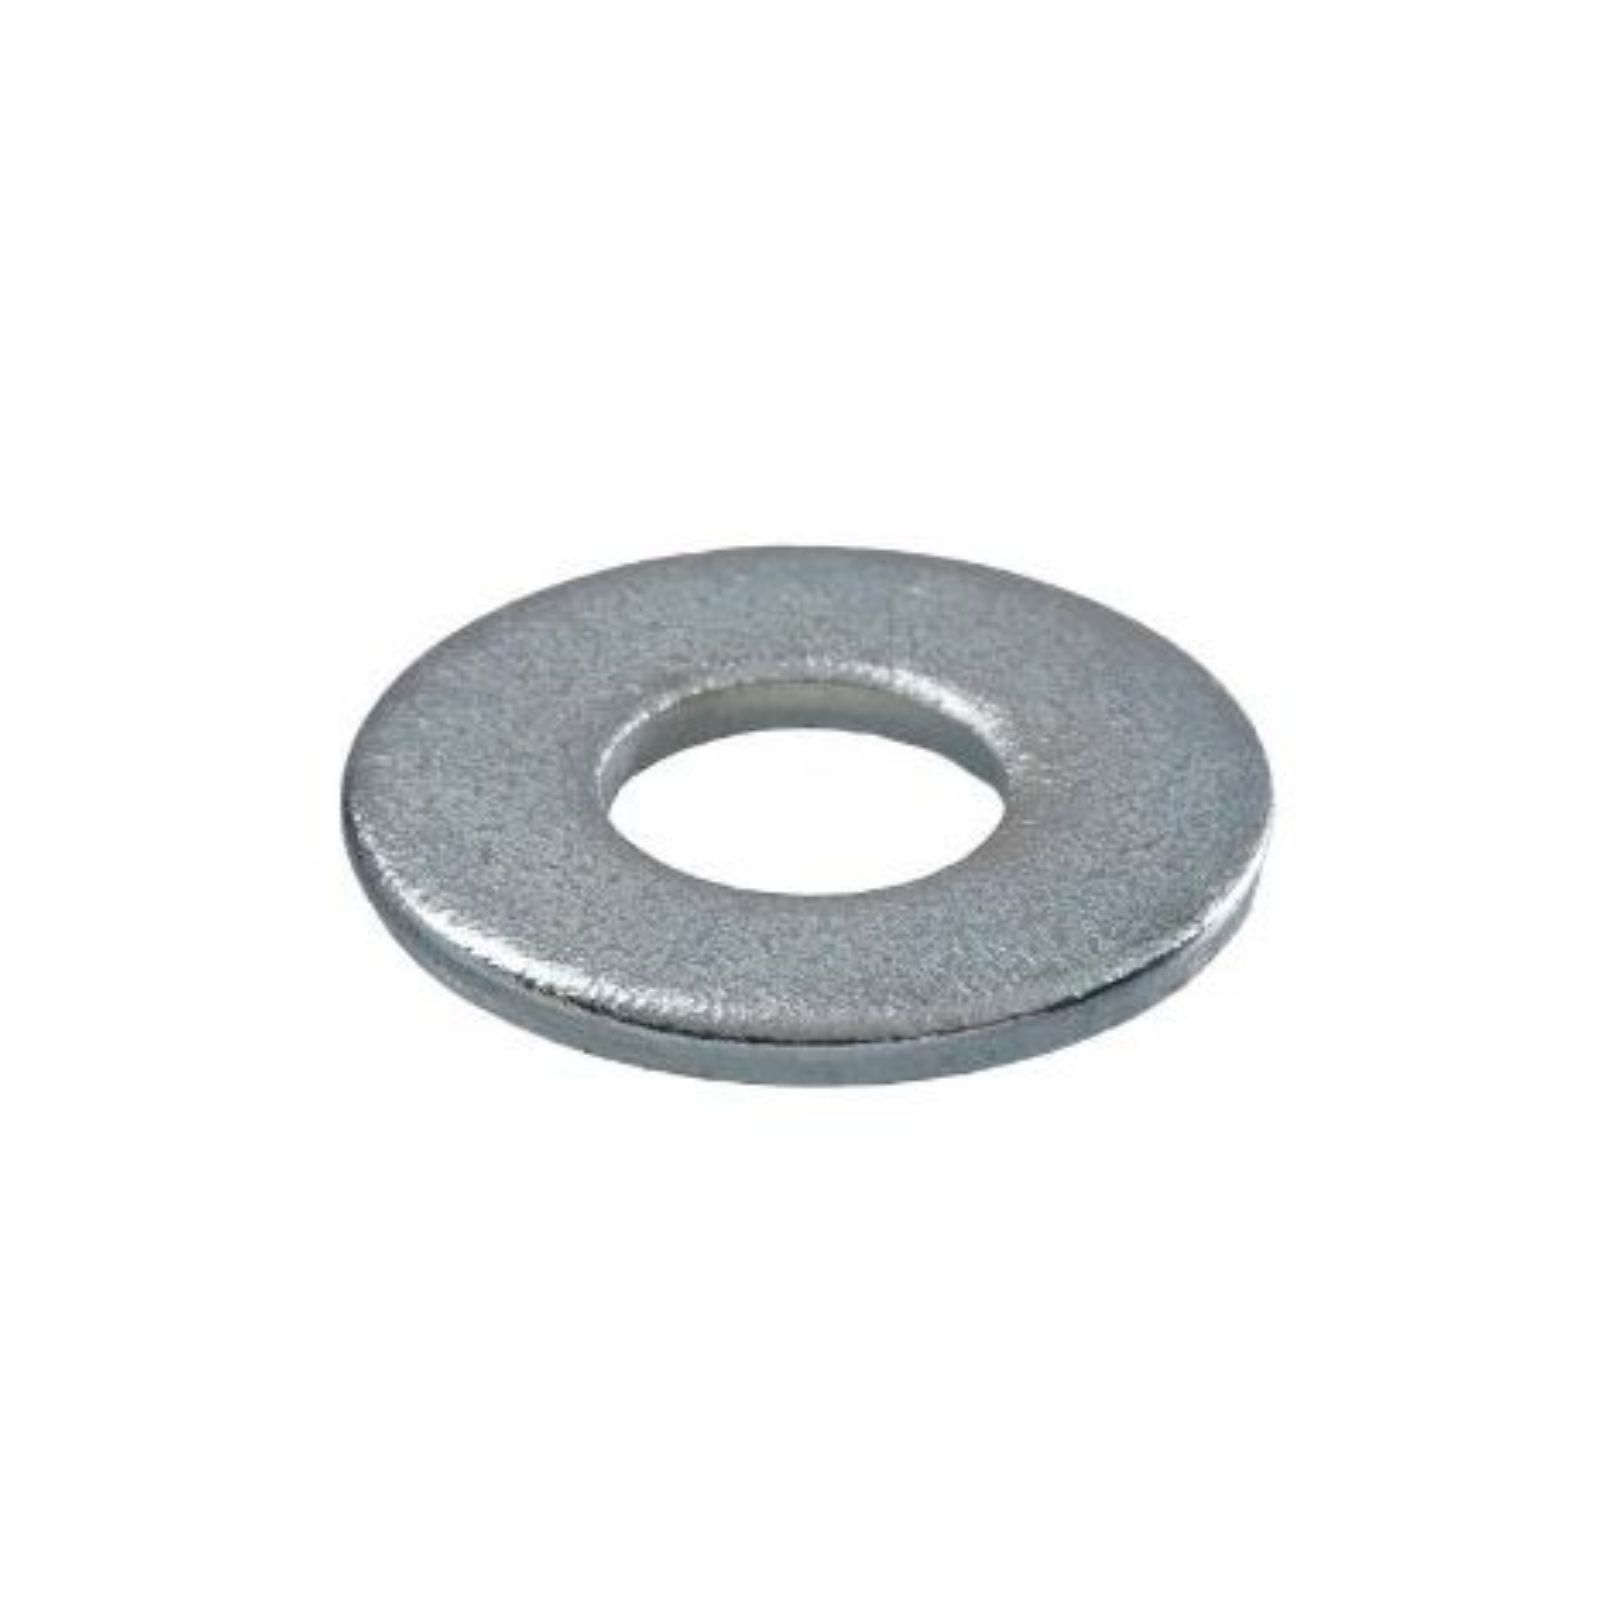 "Peco 38X2FW - 3/8"" X 2"" Fender Washer Zinc"